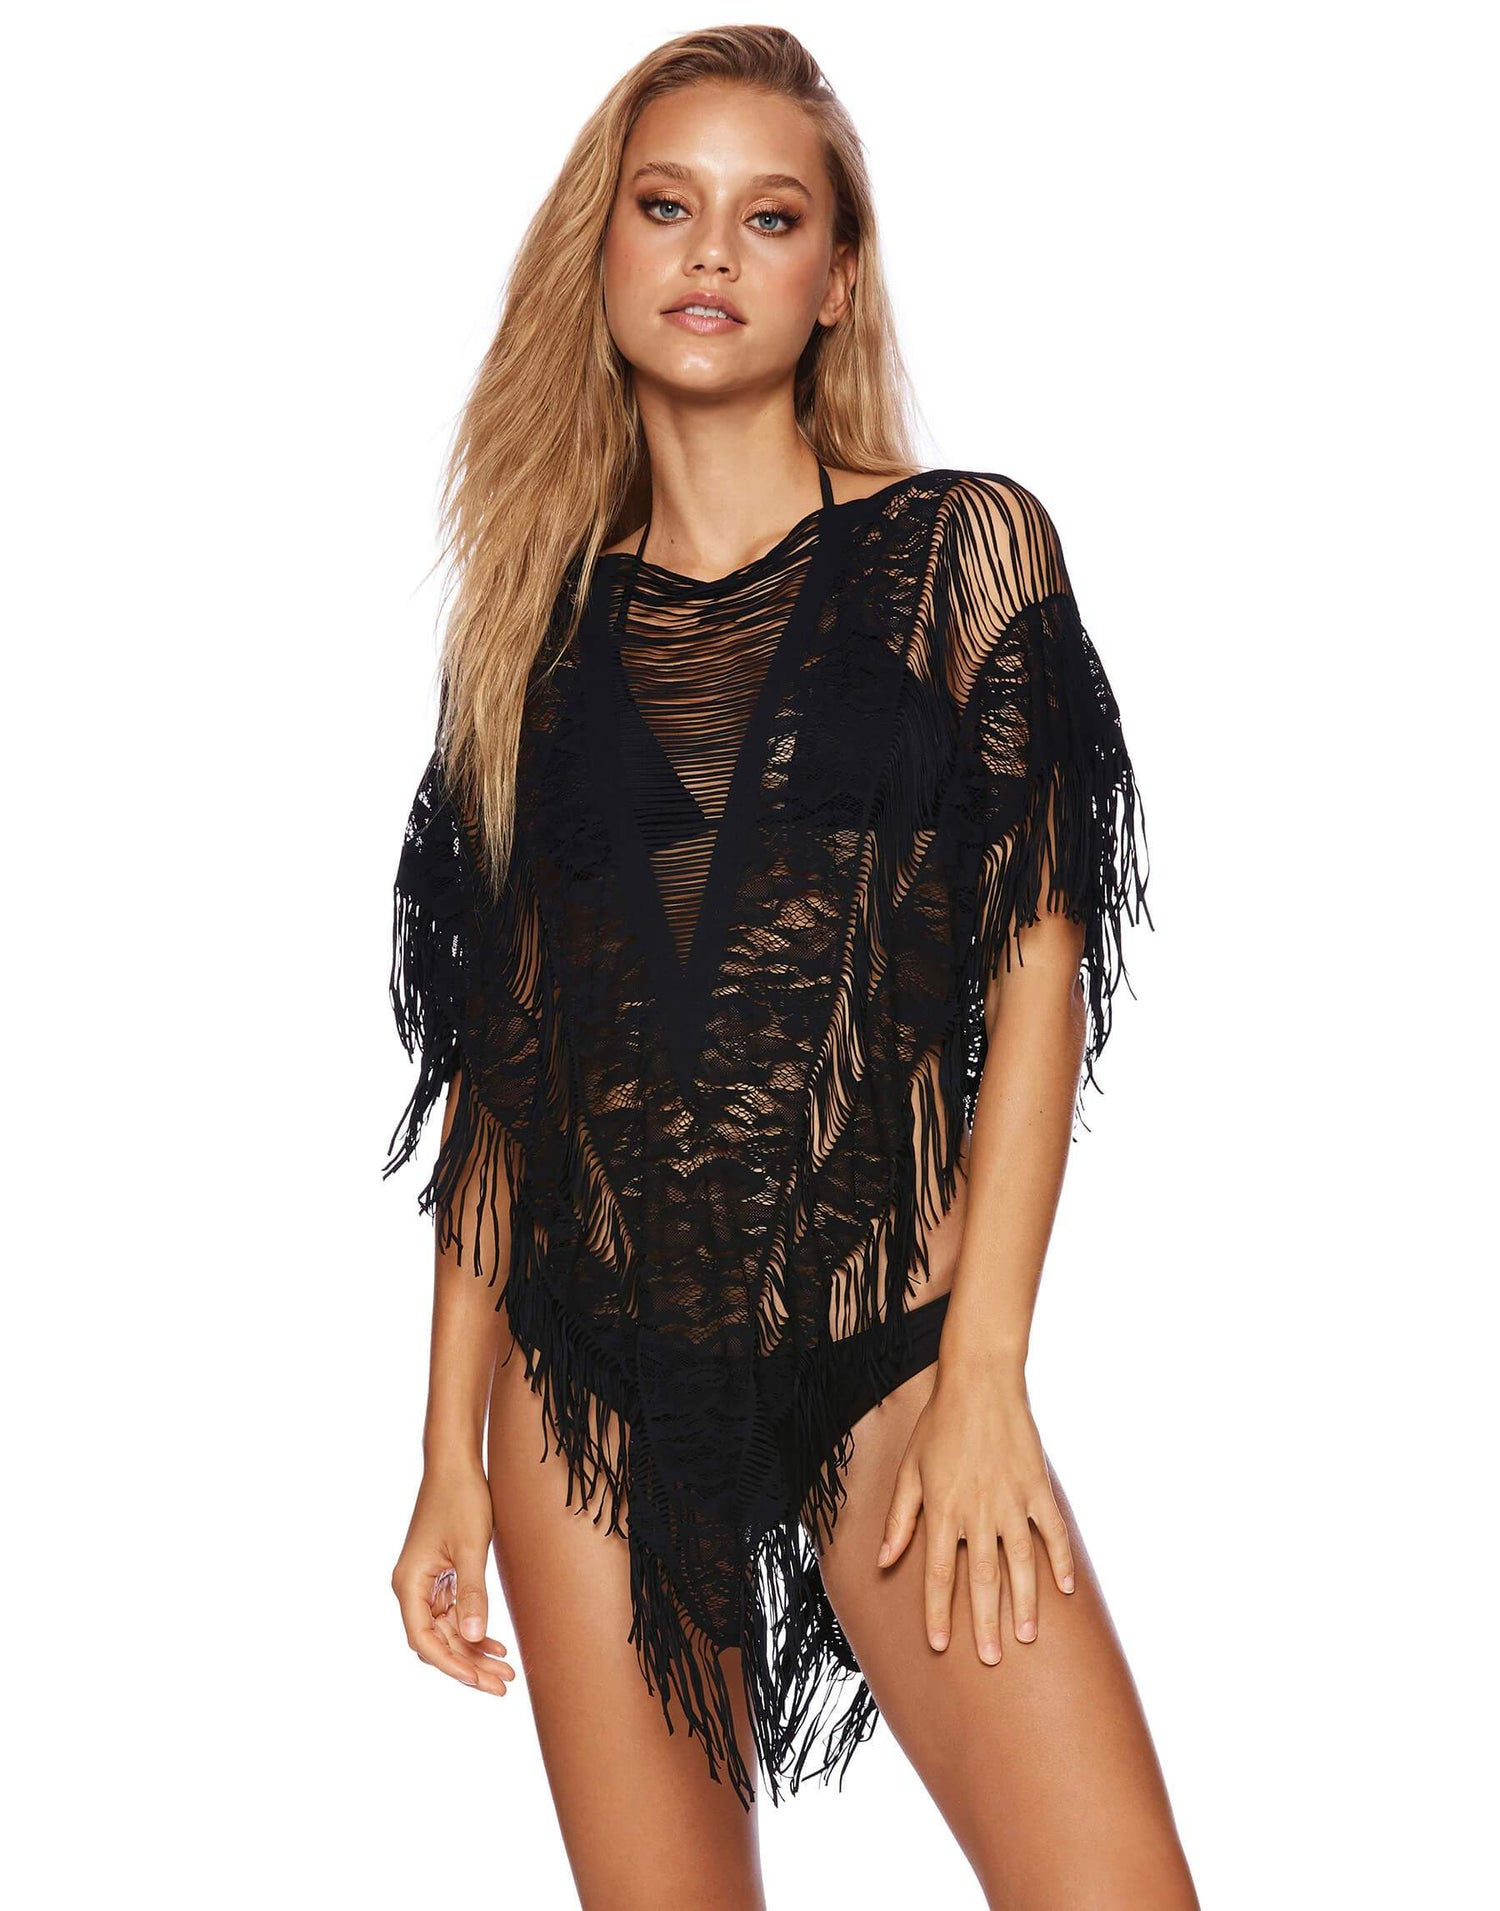 Black Fringe Indian Summer Lace Poncho - front view